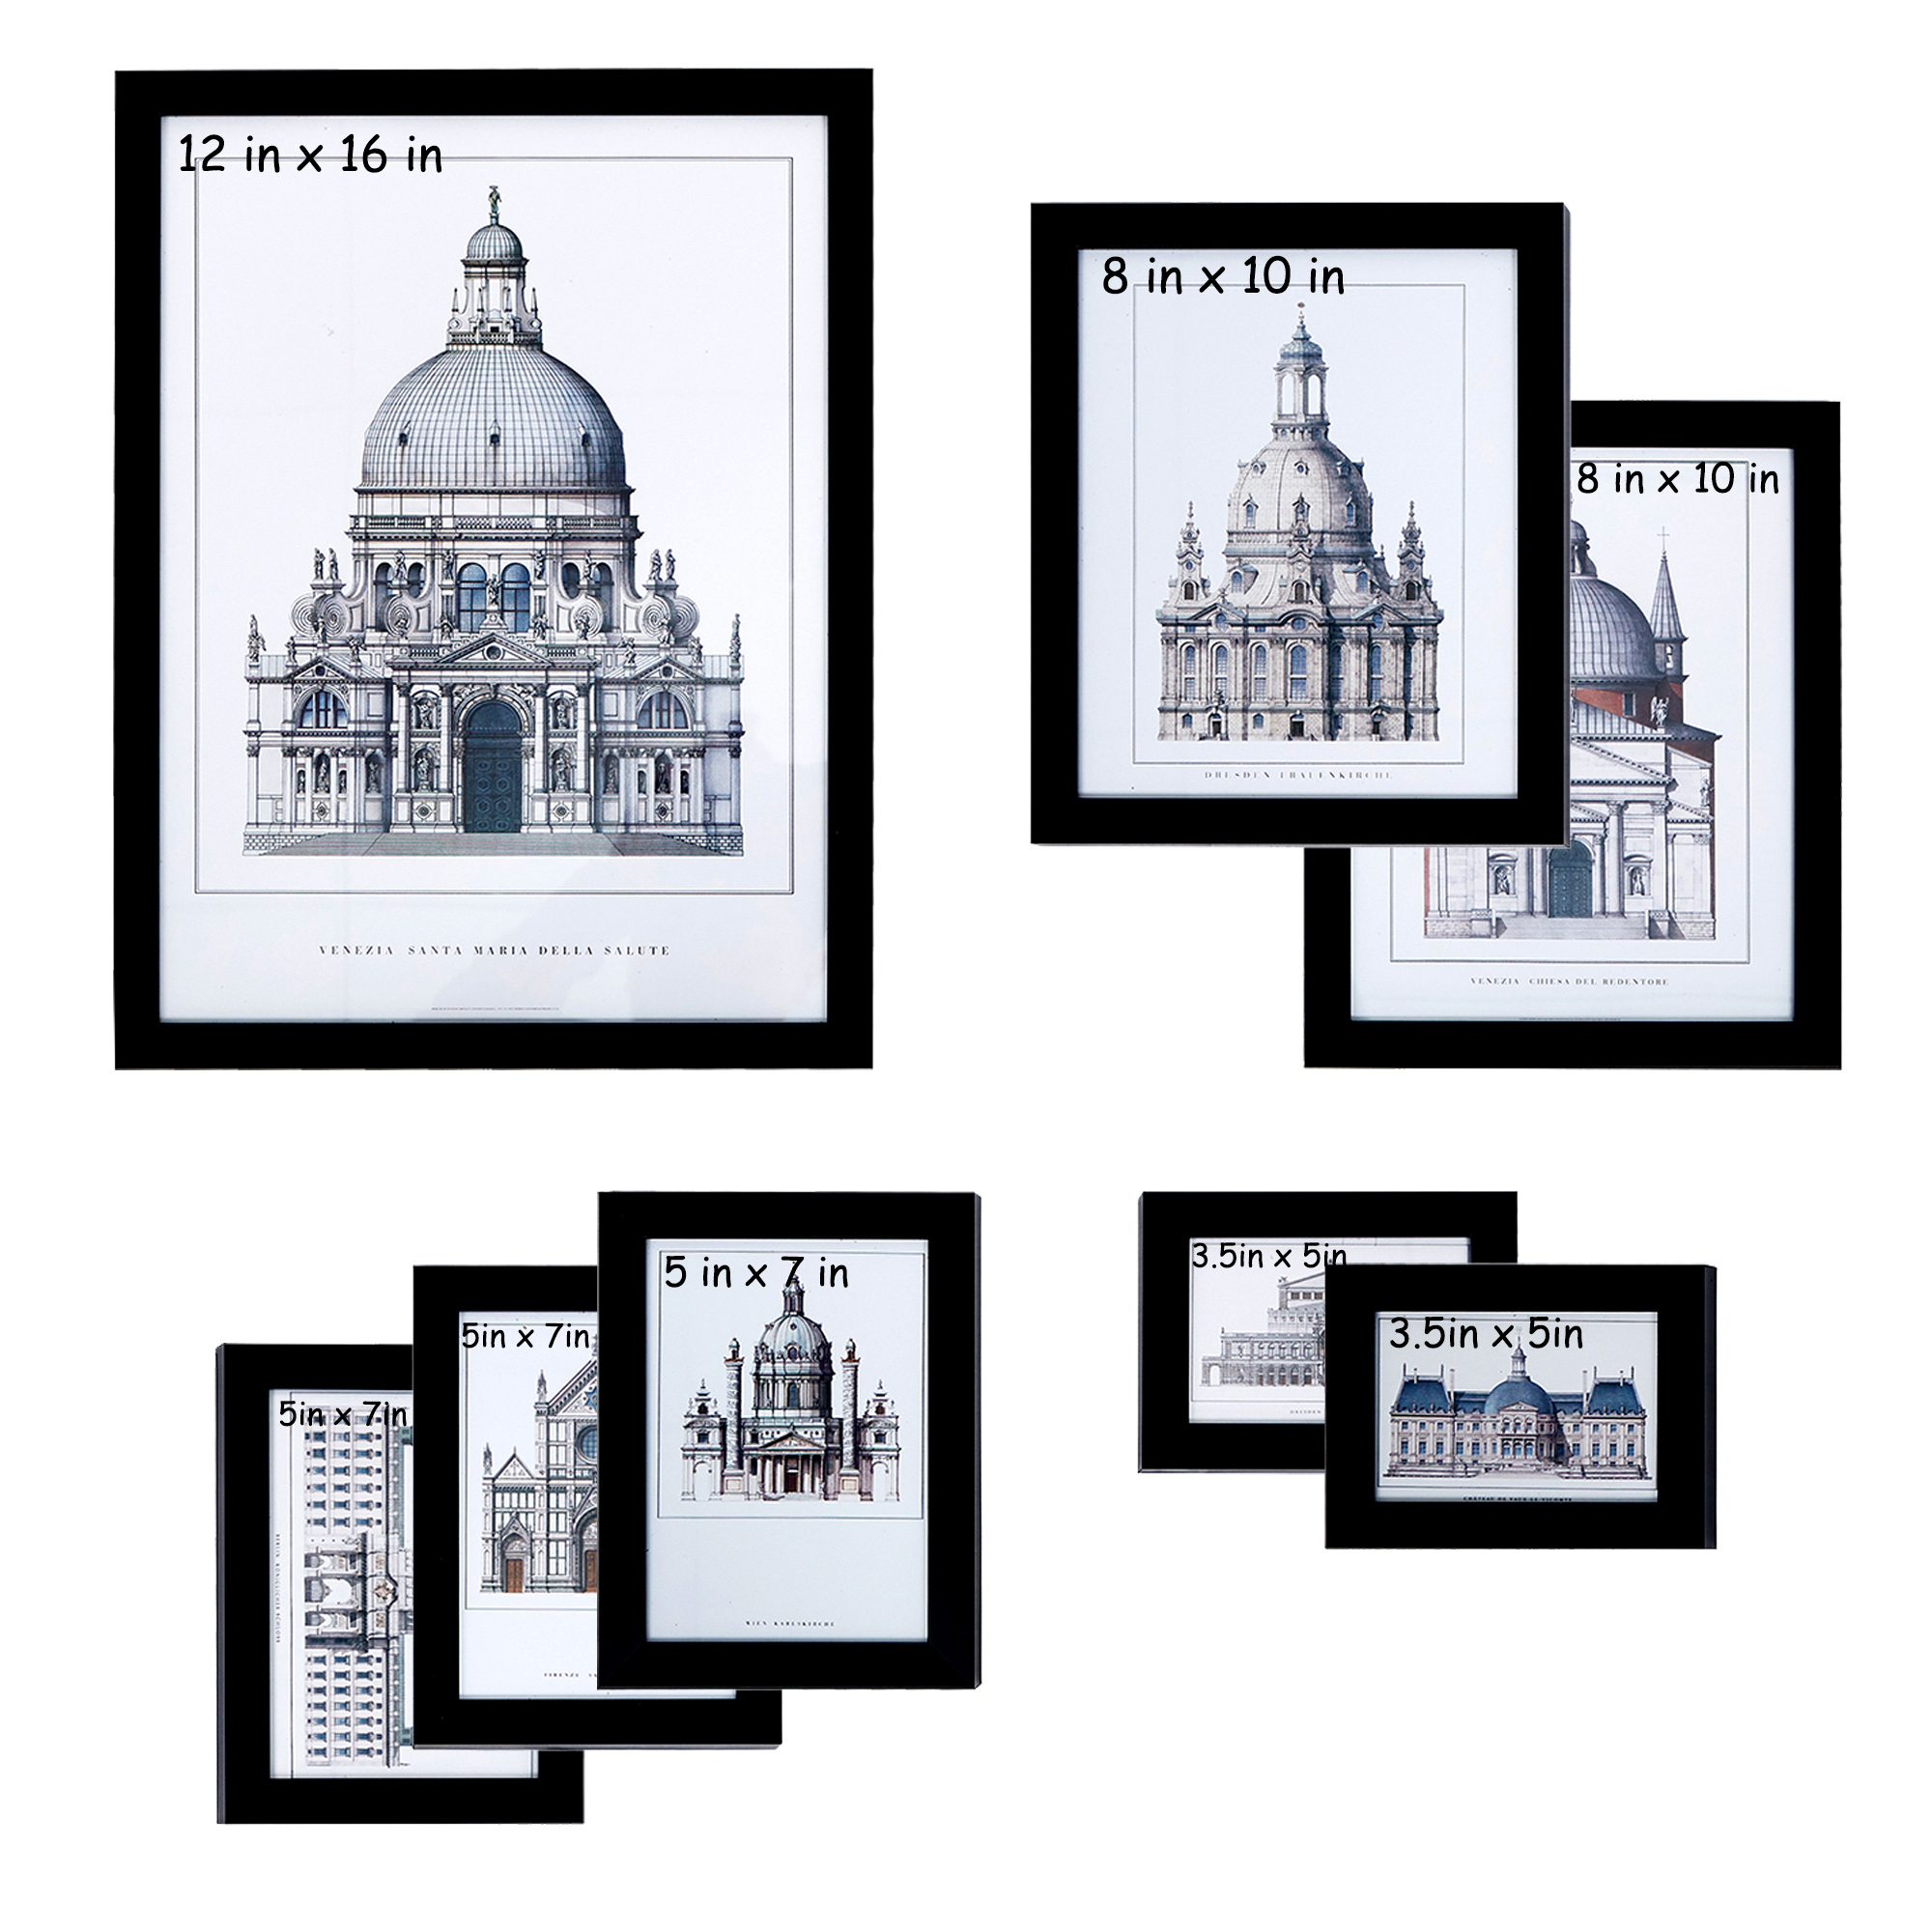 Karmas Product Picture Frame Sets Of 8 1 Pc 12x16 In 2 Pcs 8x10 In